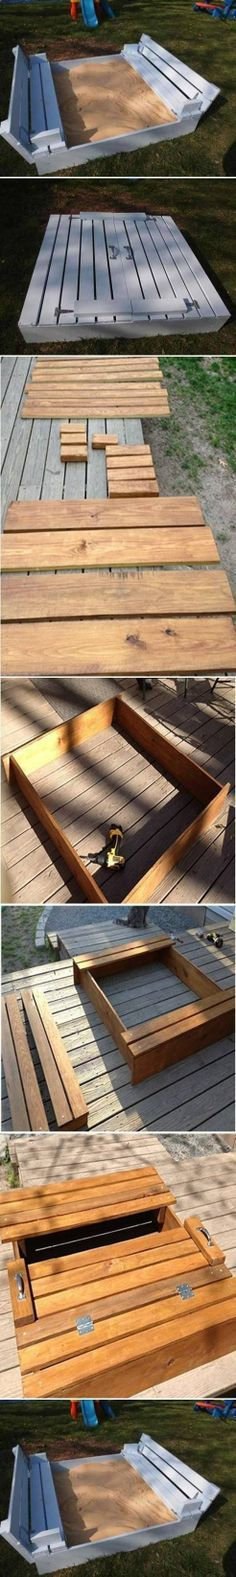 DIY sandbox with lid. This is about the only way I could allow a sand box in my yard. It is super cute. :)